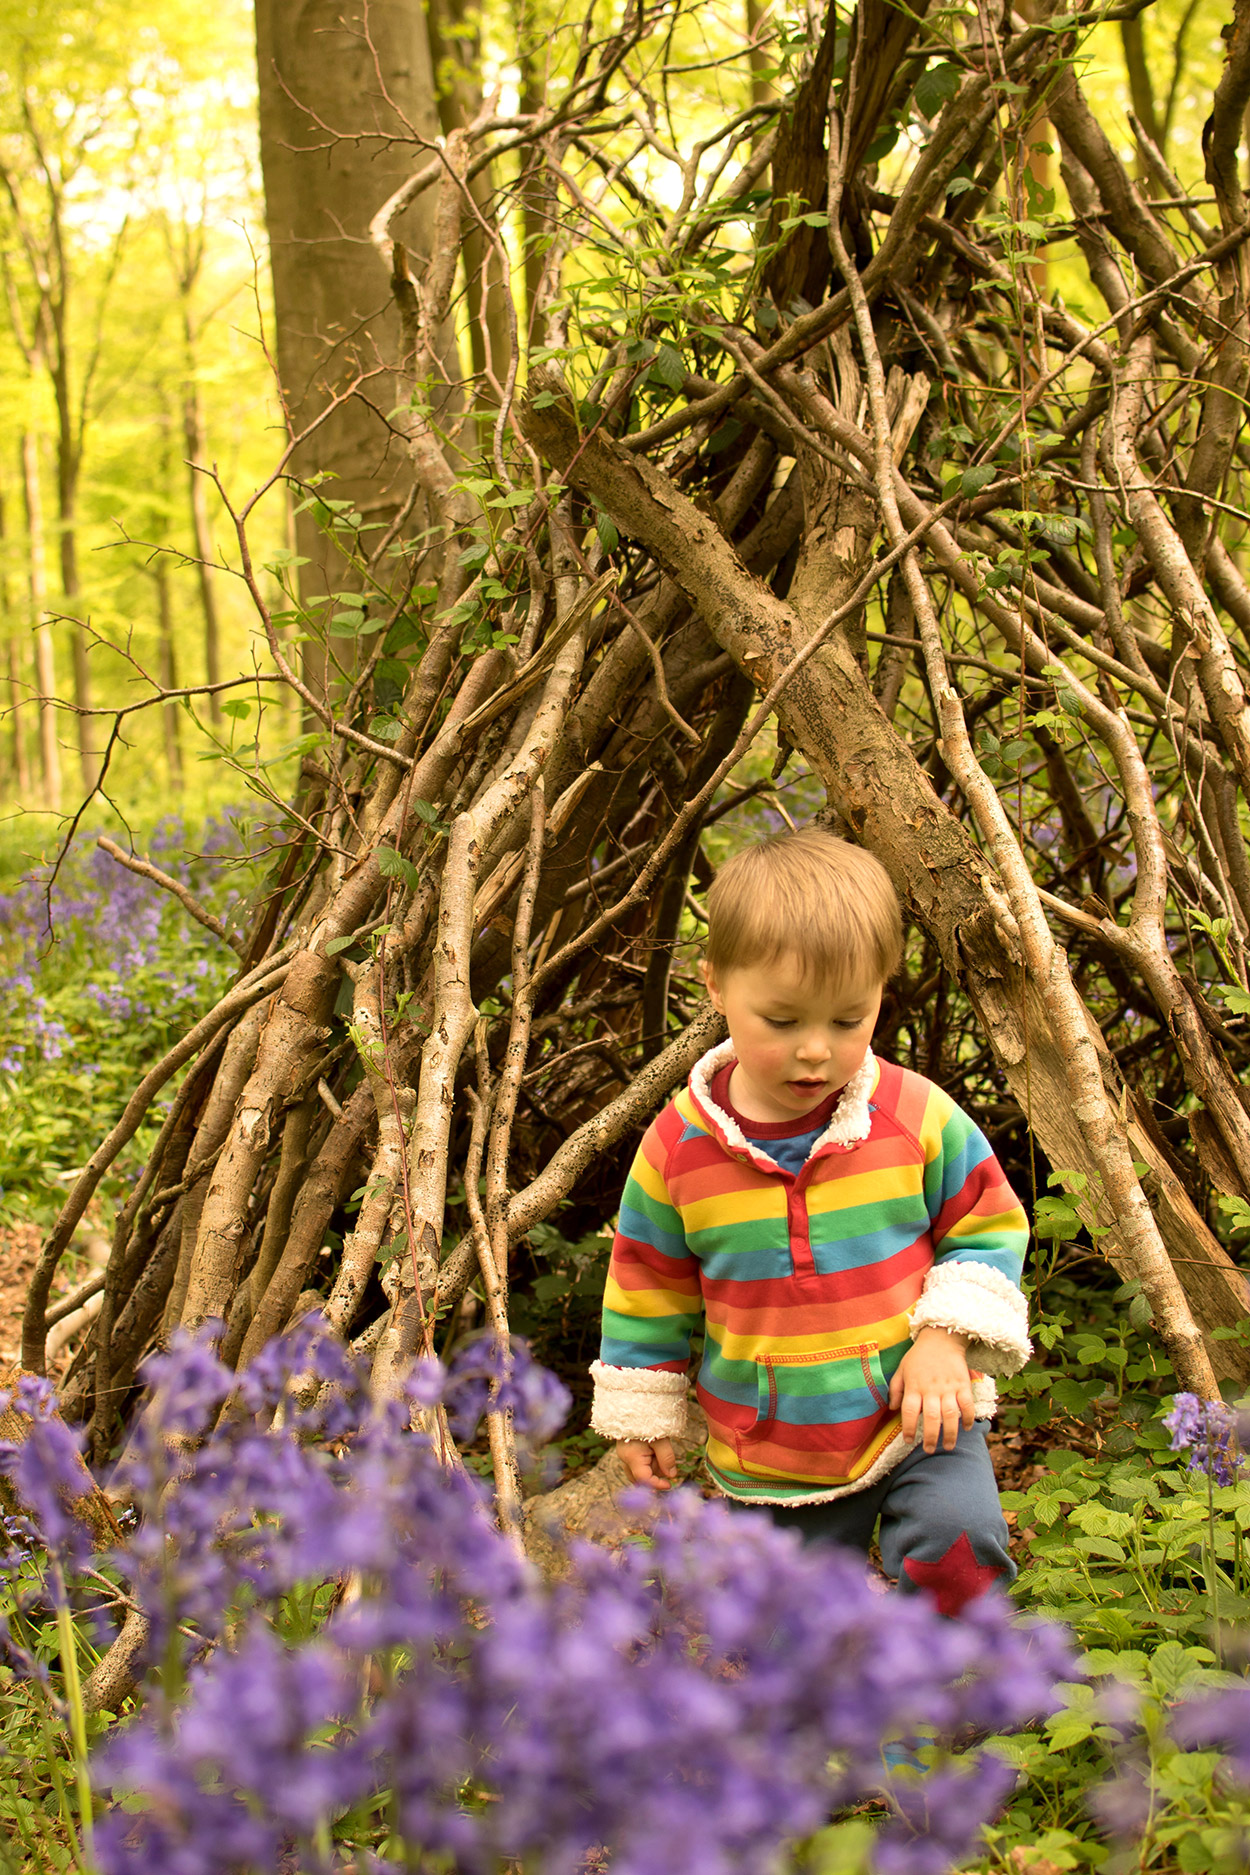 The BiBs and Us - Father and baby son cuddling outside among the bluebells wearing Urban Outfitters 'K' sweatshirt and Frugi rainbow snuggle fleece with Little Green Radicals house sleepsuit